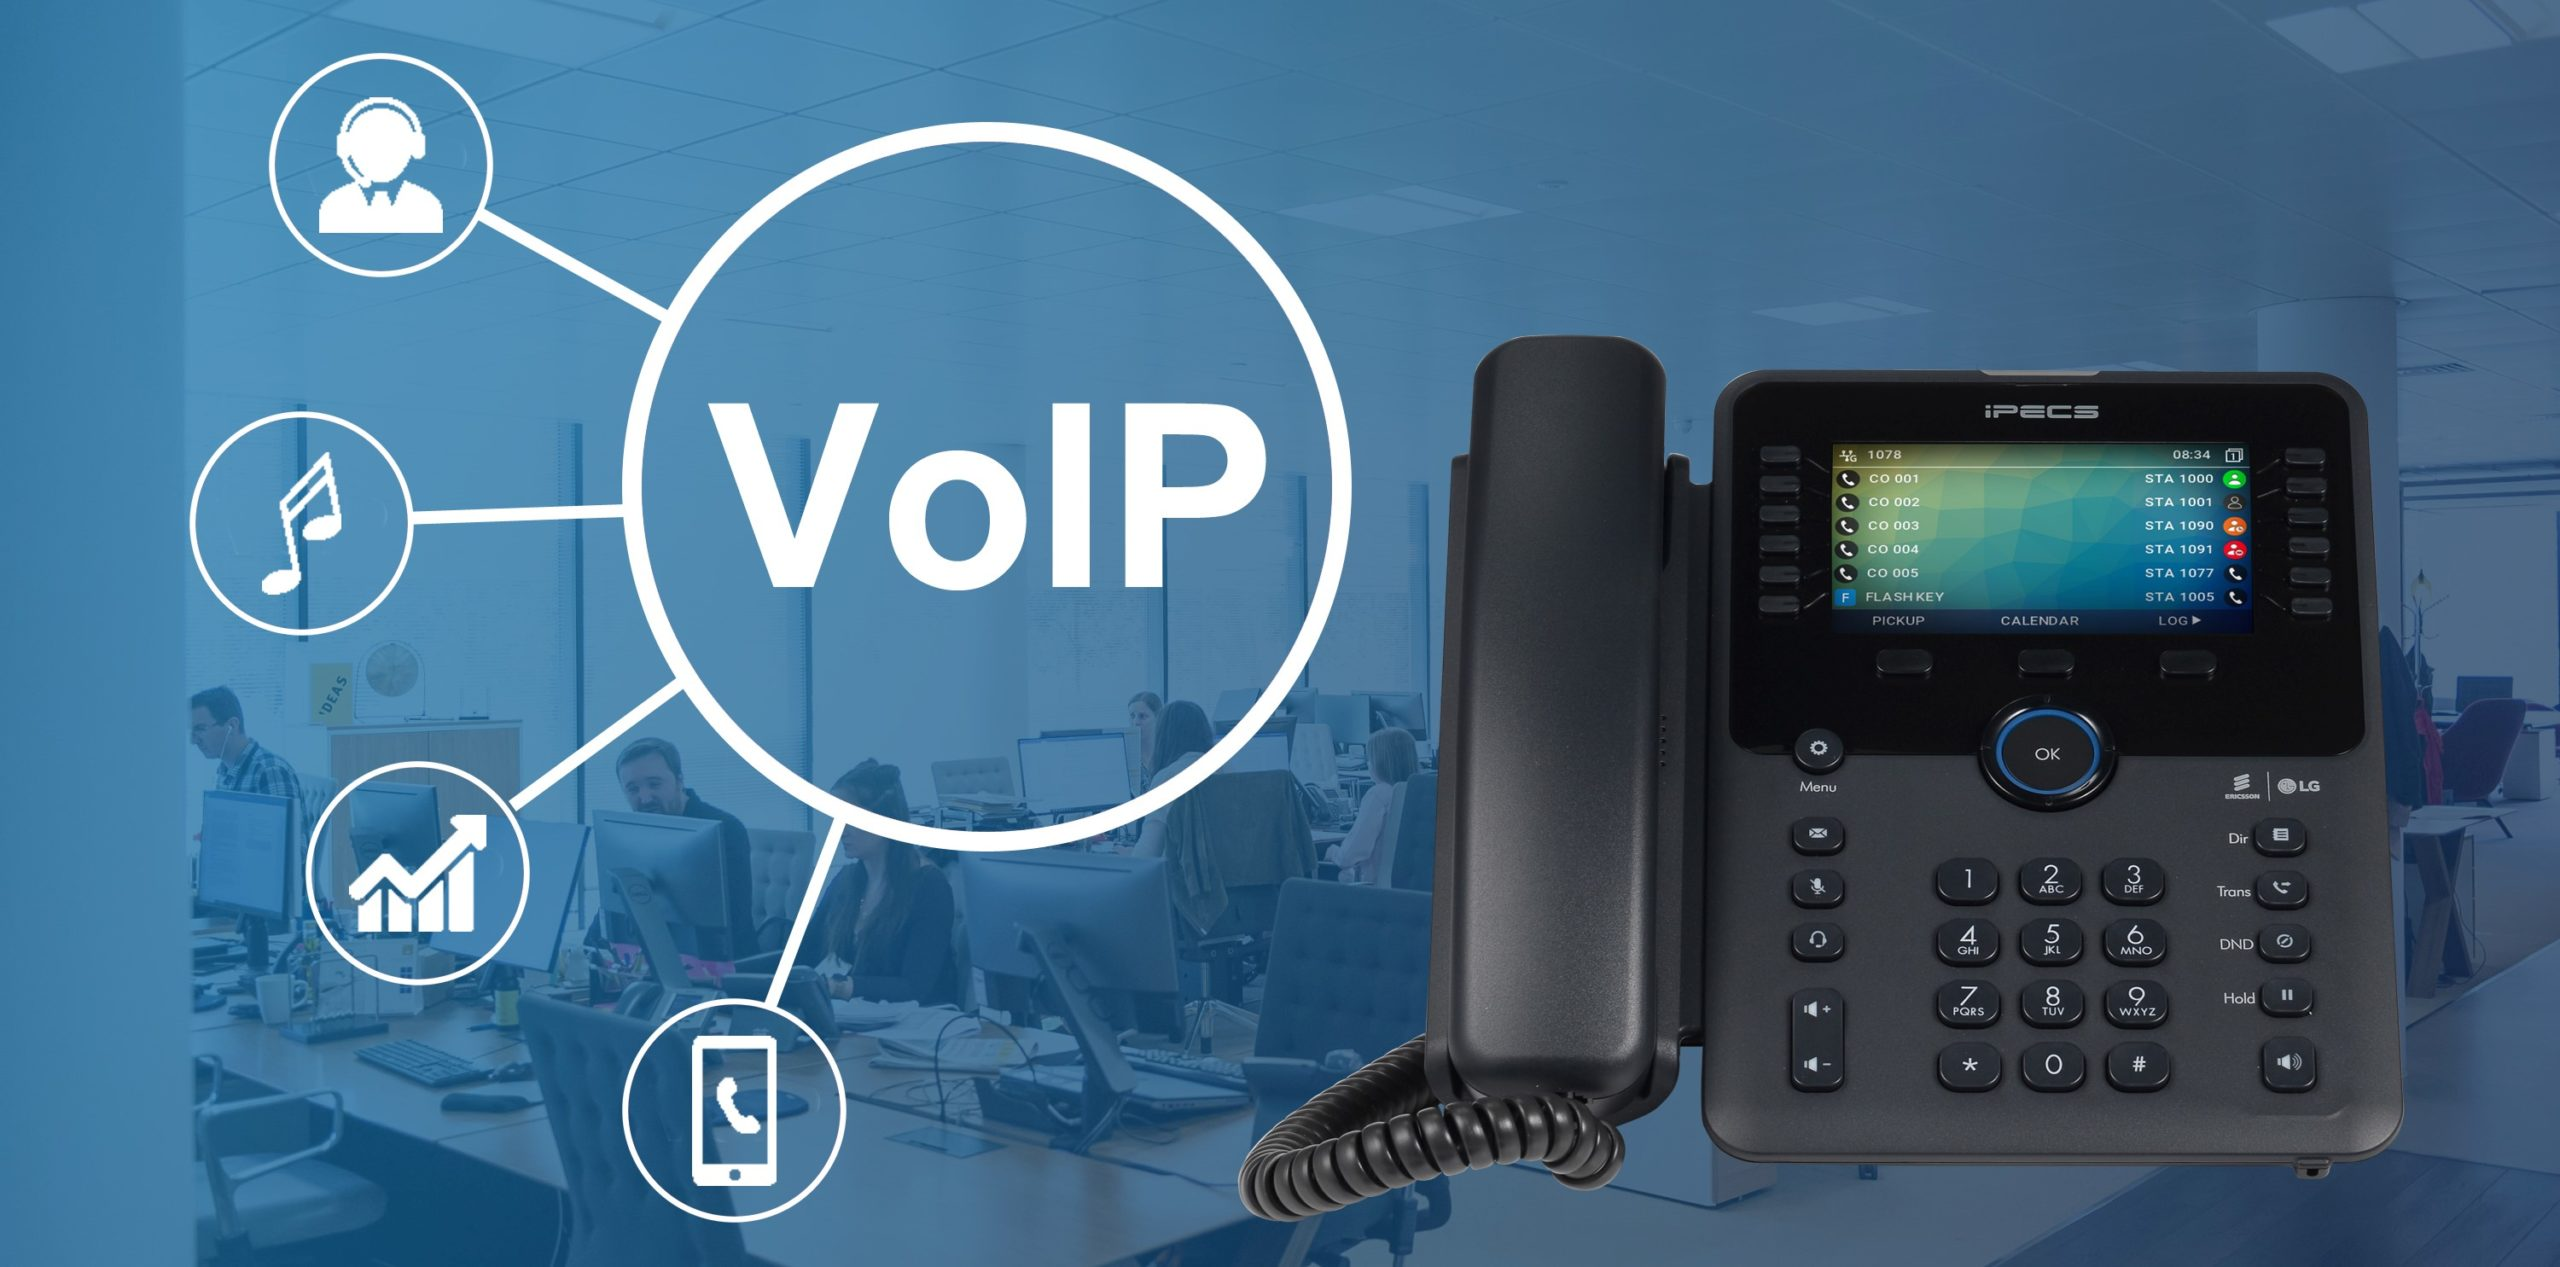 What are the benefits of VoIP for businesses